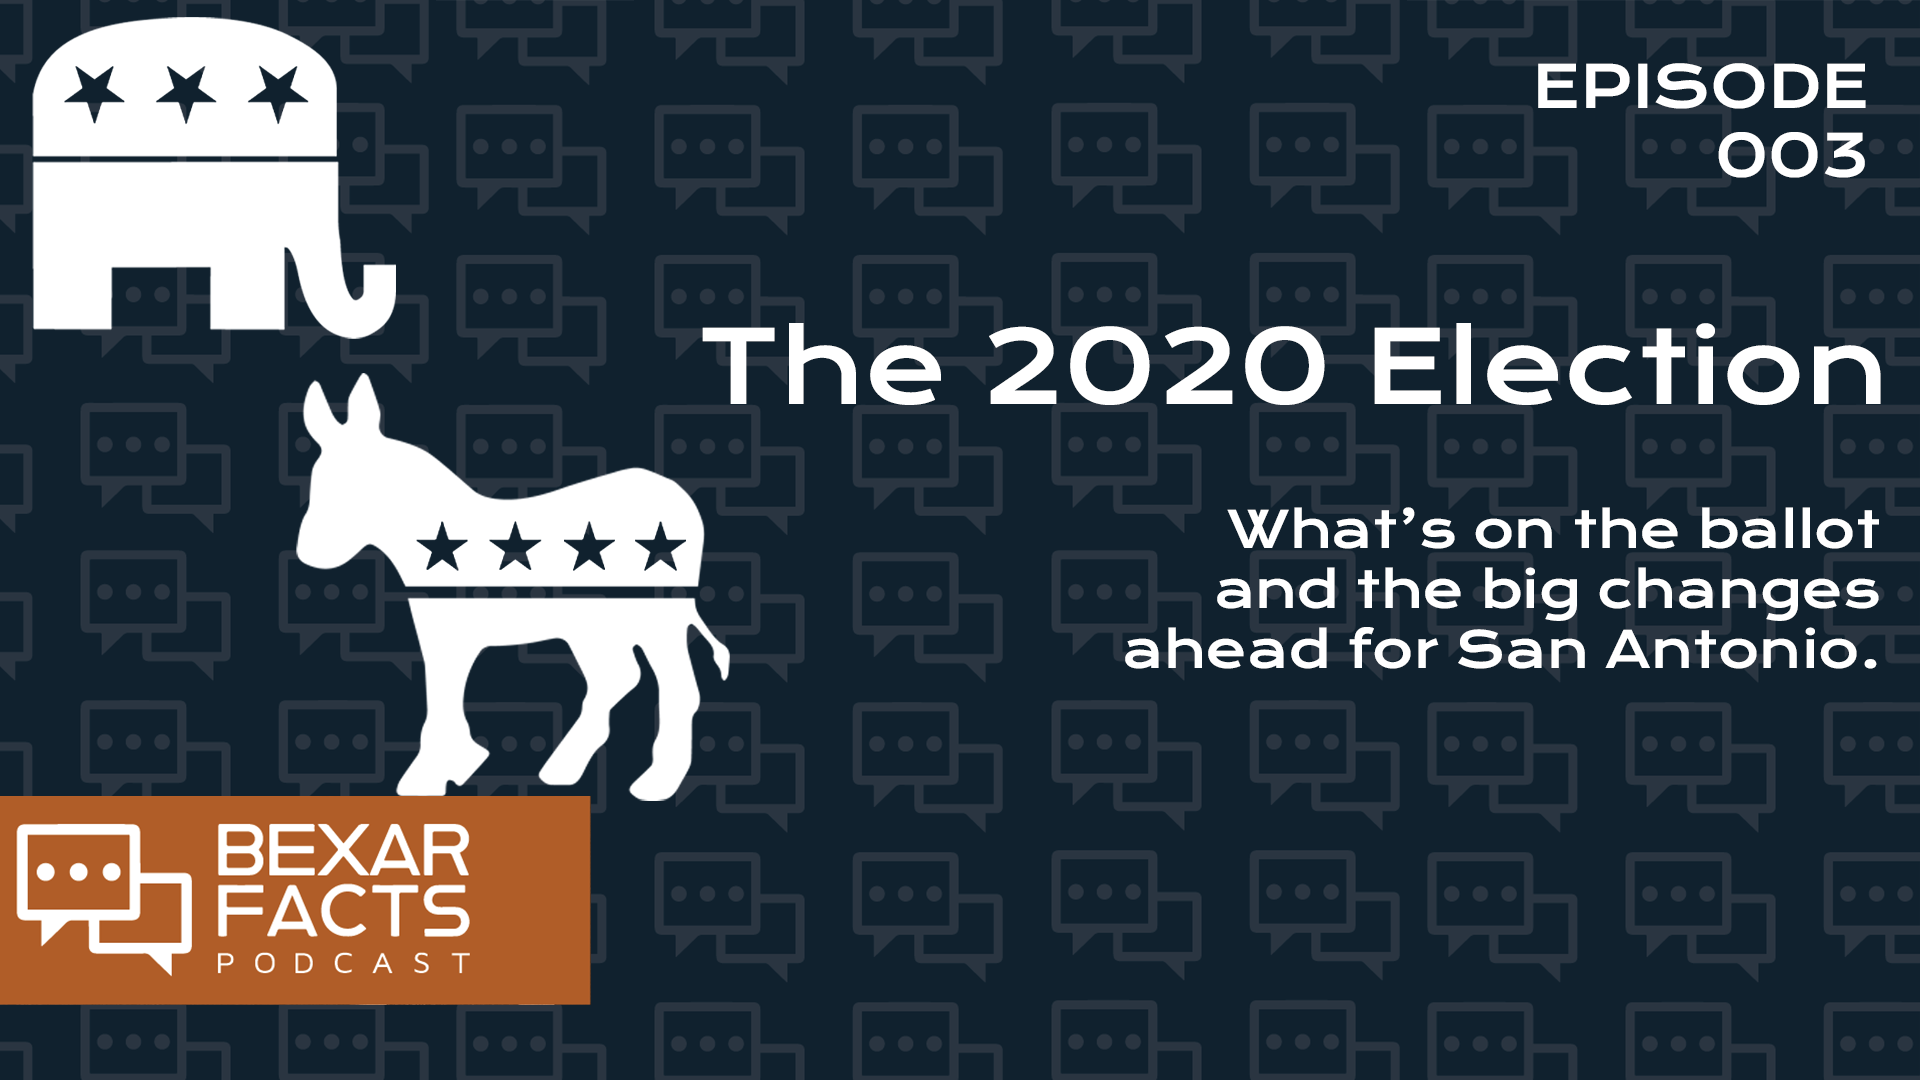 003: The 2020 Election Podcast